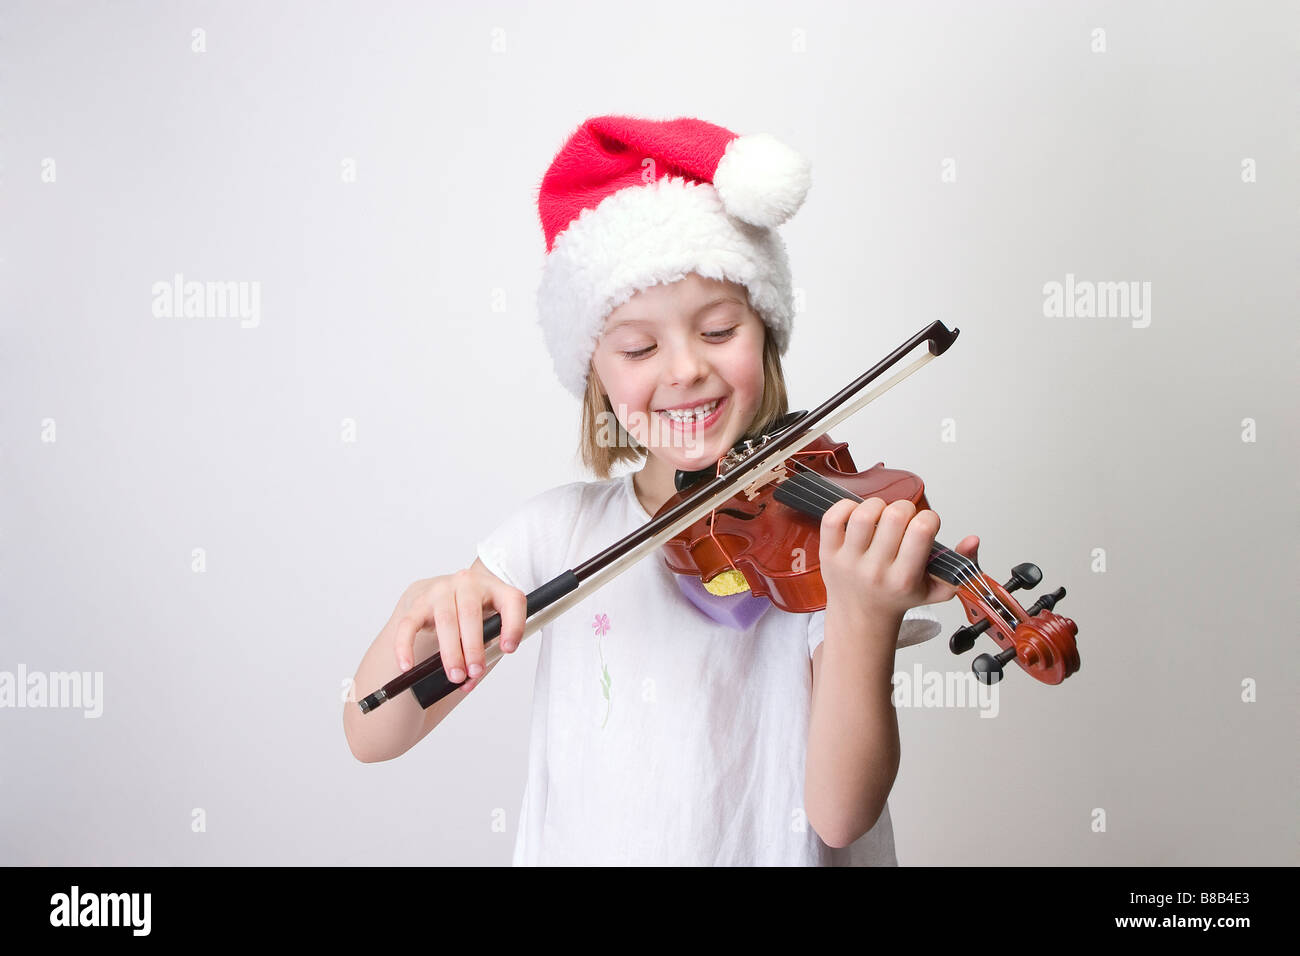 Girl - 6 years old  playing violin in Santa hat - Stock Image